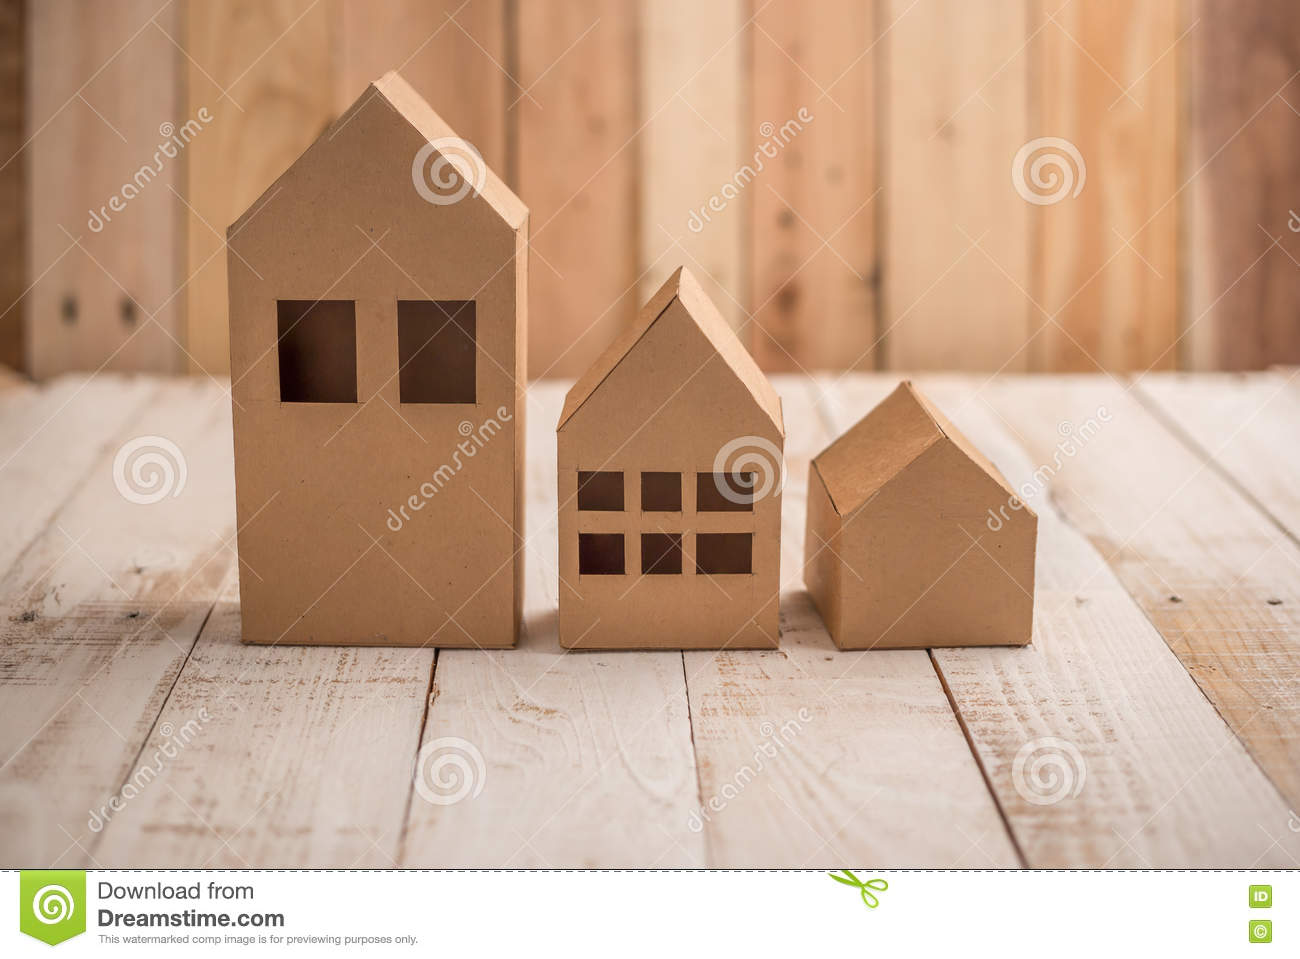 Model Of Cardboard House On Wooden Floor And Background